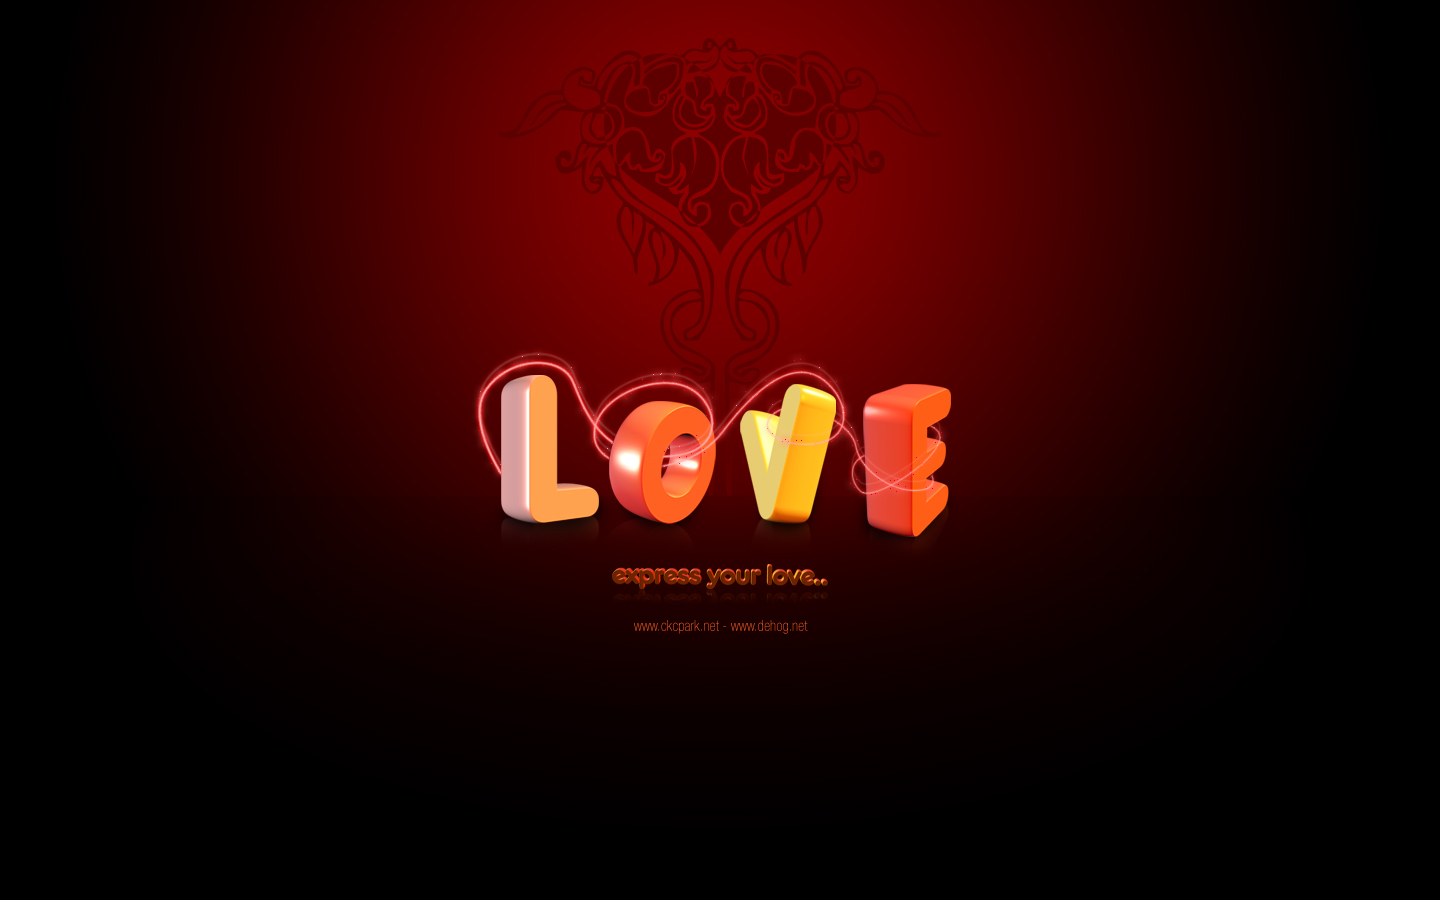 Love Desktop Background Wallpapers HD Wallpapers 1440x900